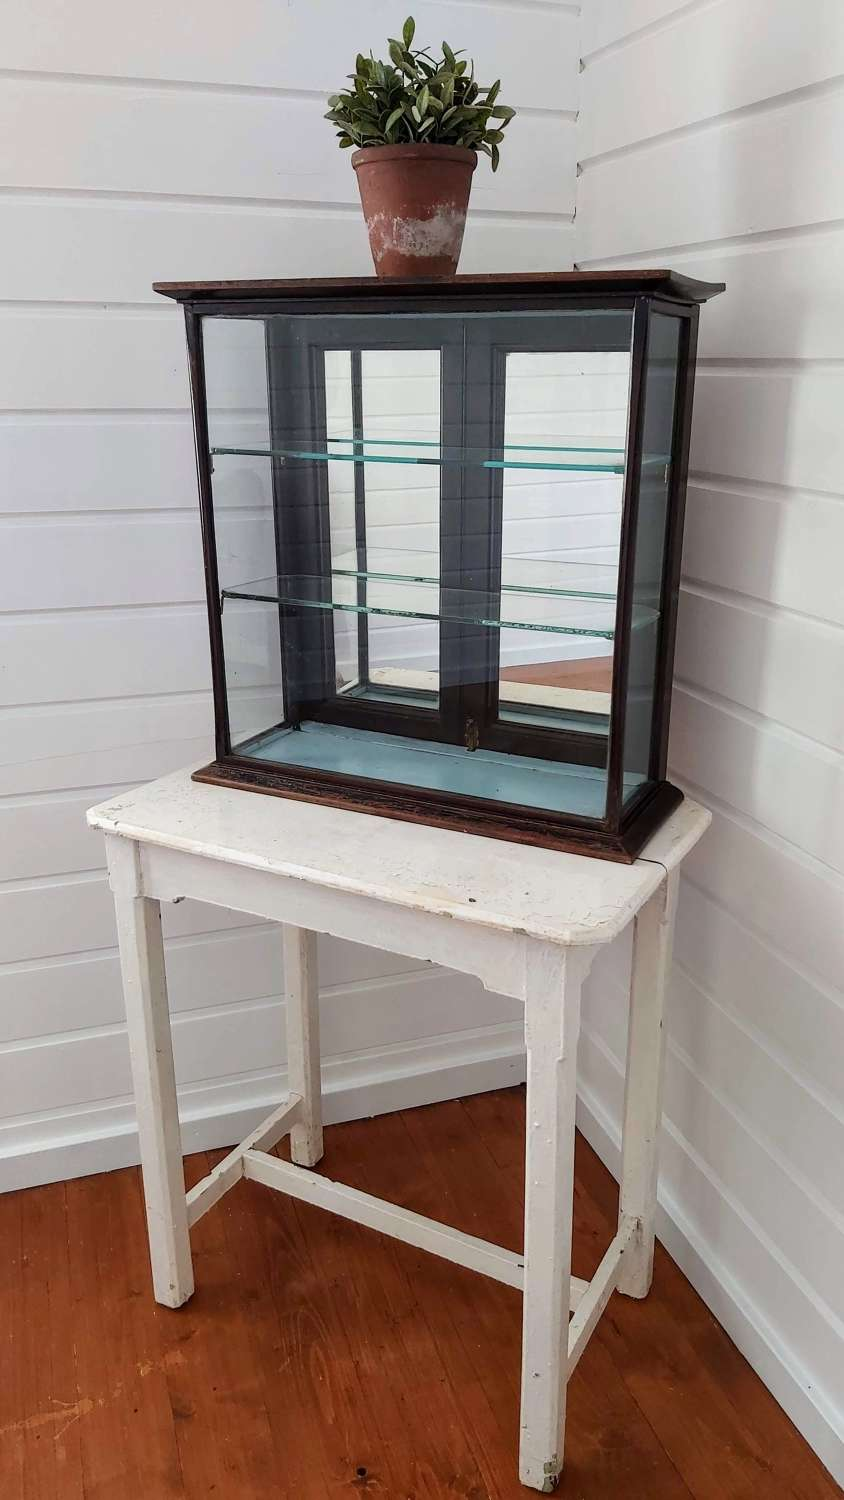 19th century mirror backed shop counter display cabinet